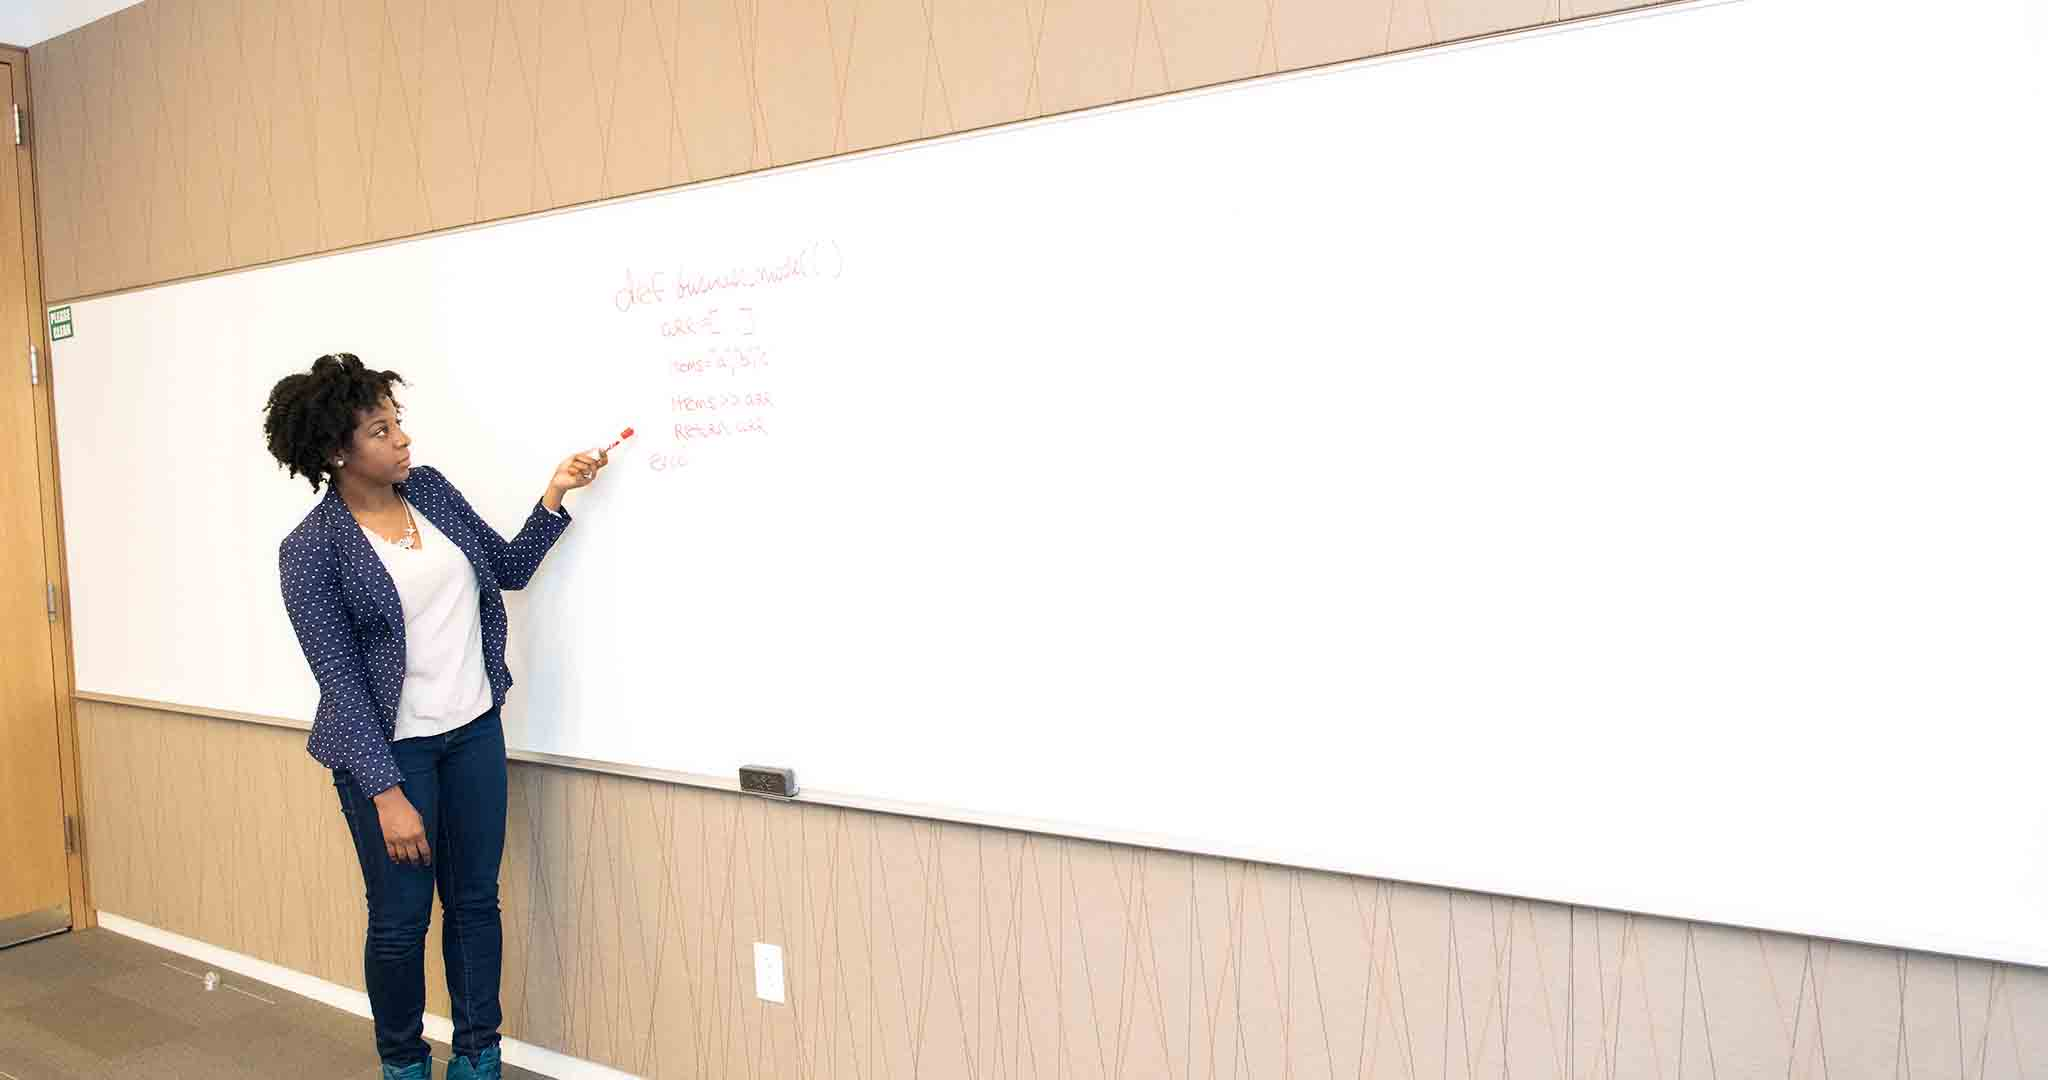 conference room indoors person teaching stock photography